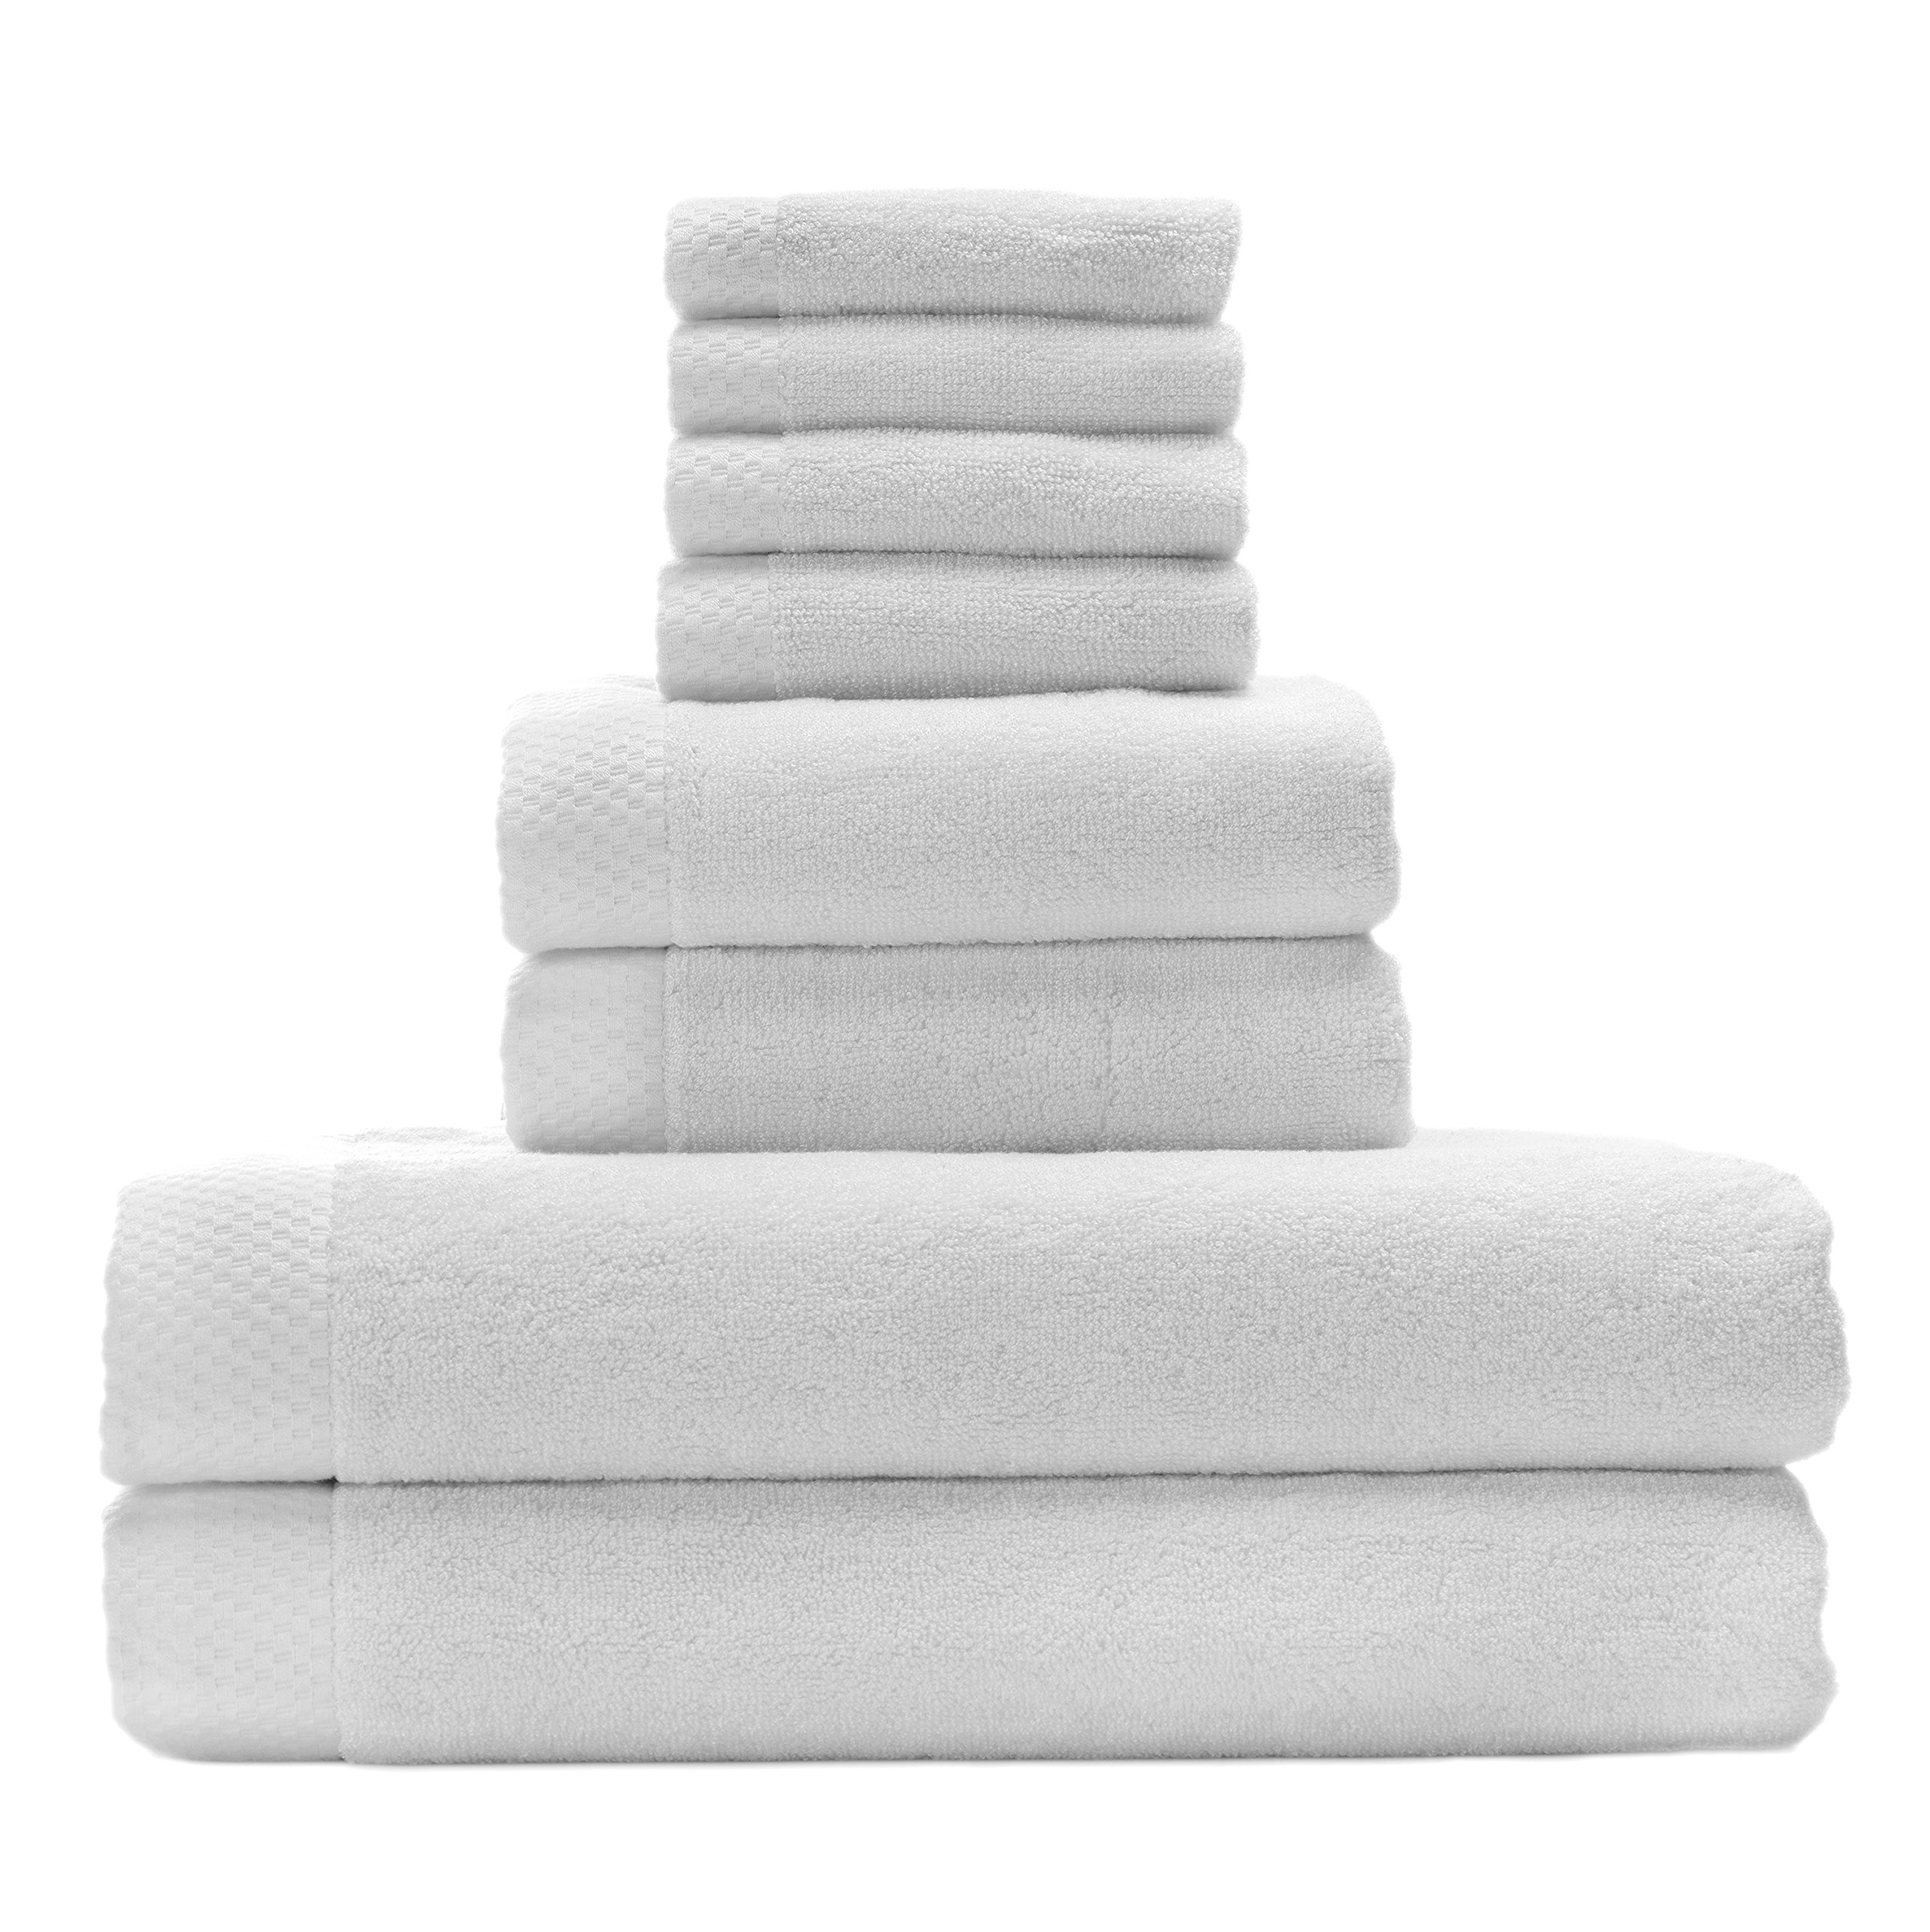 Silky Soft Organic Bamboo Bath Towel Set Bundles By BedVoyage the Eco Resort Collection of Spa Luxuriousness and Opulence In Your Own Bathroom (White)